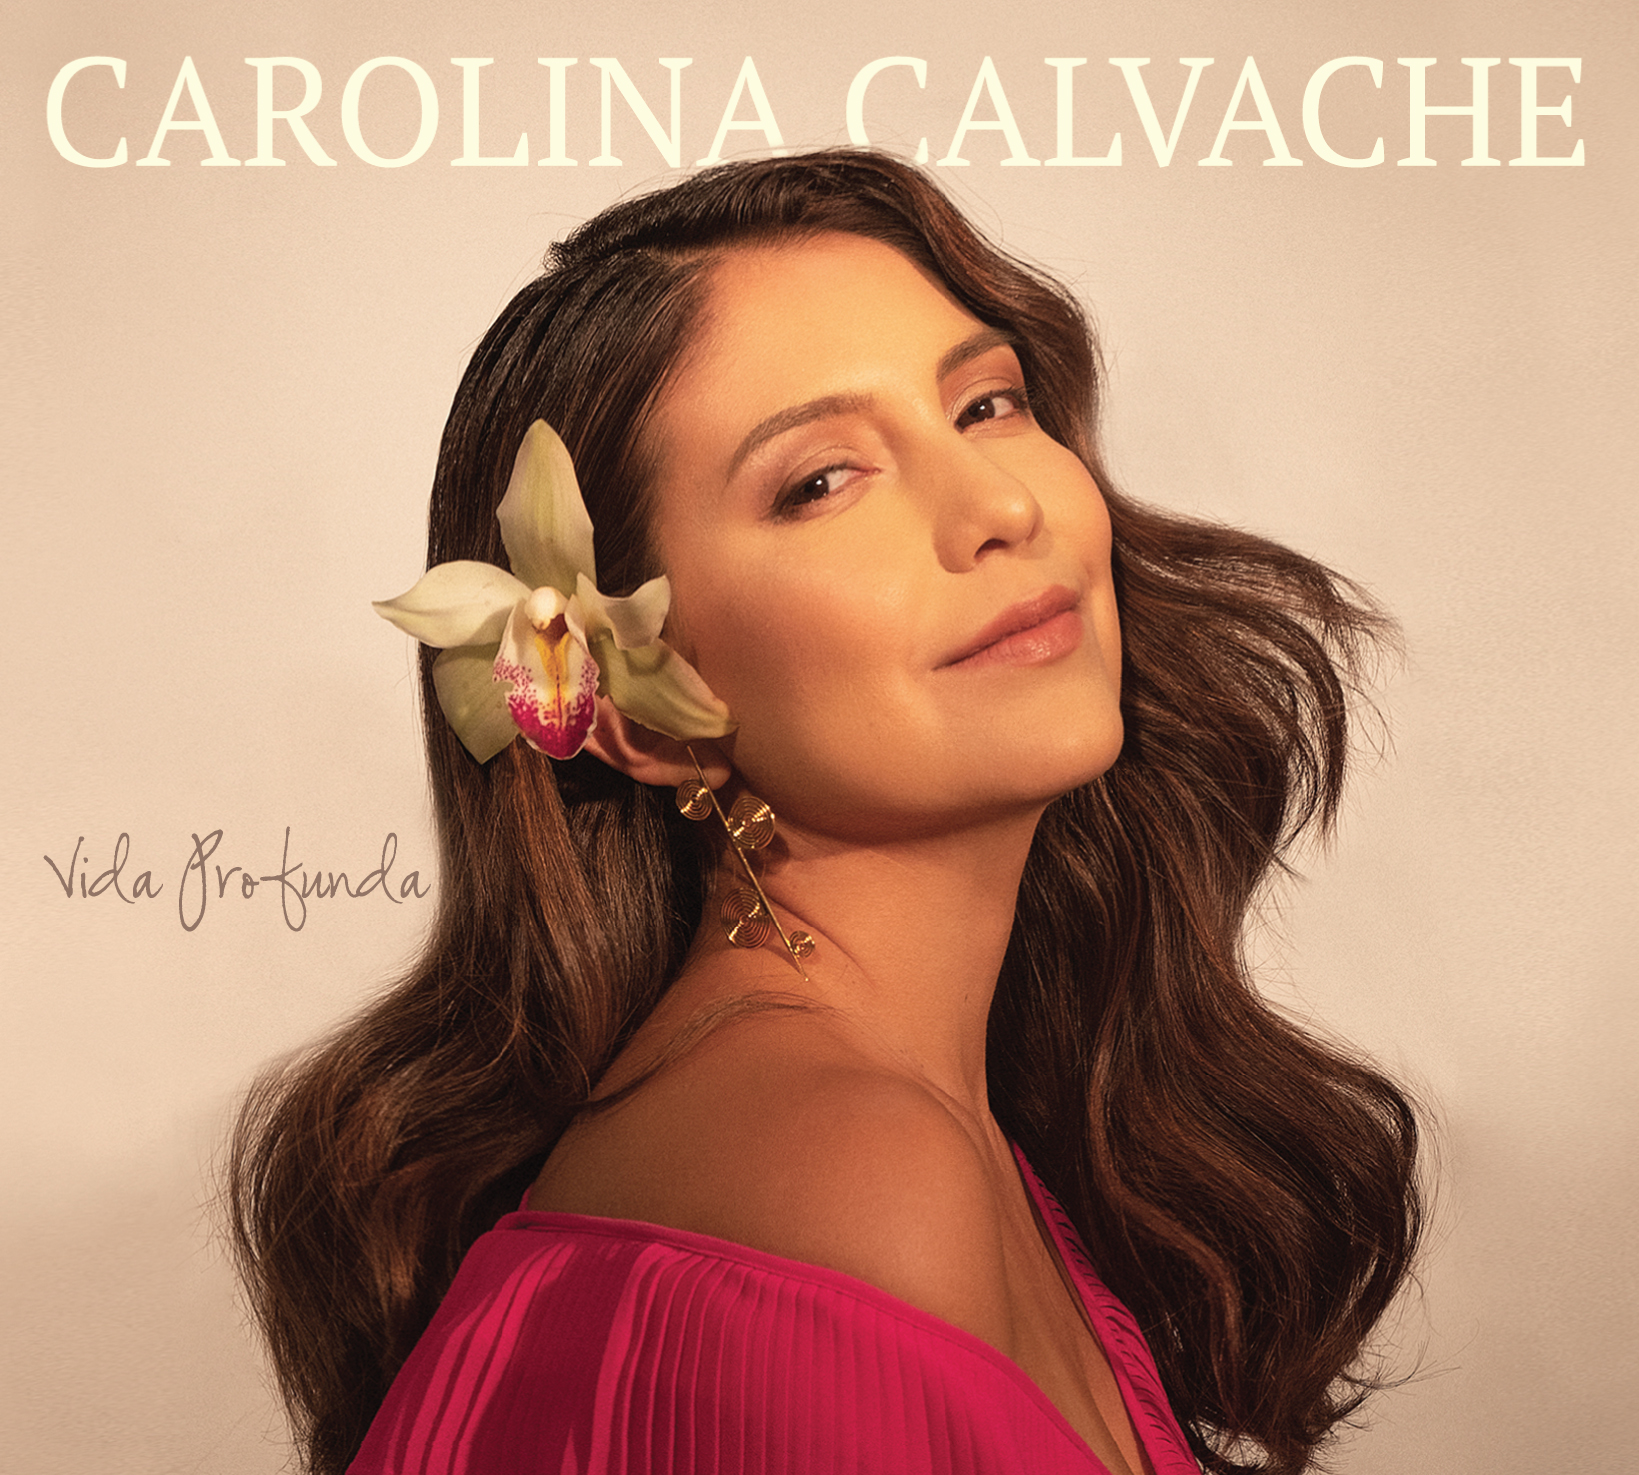 KCRW: Carolina Calvache Featured on The Rhythm Planet Playlist